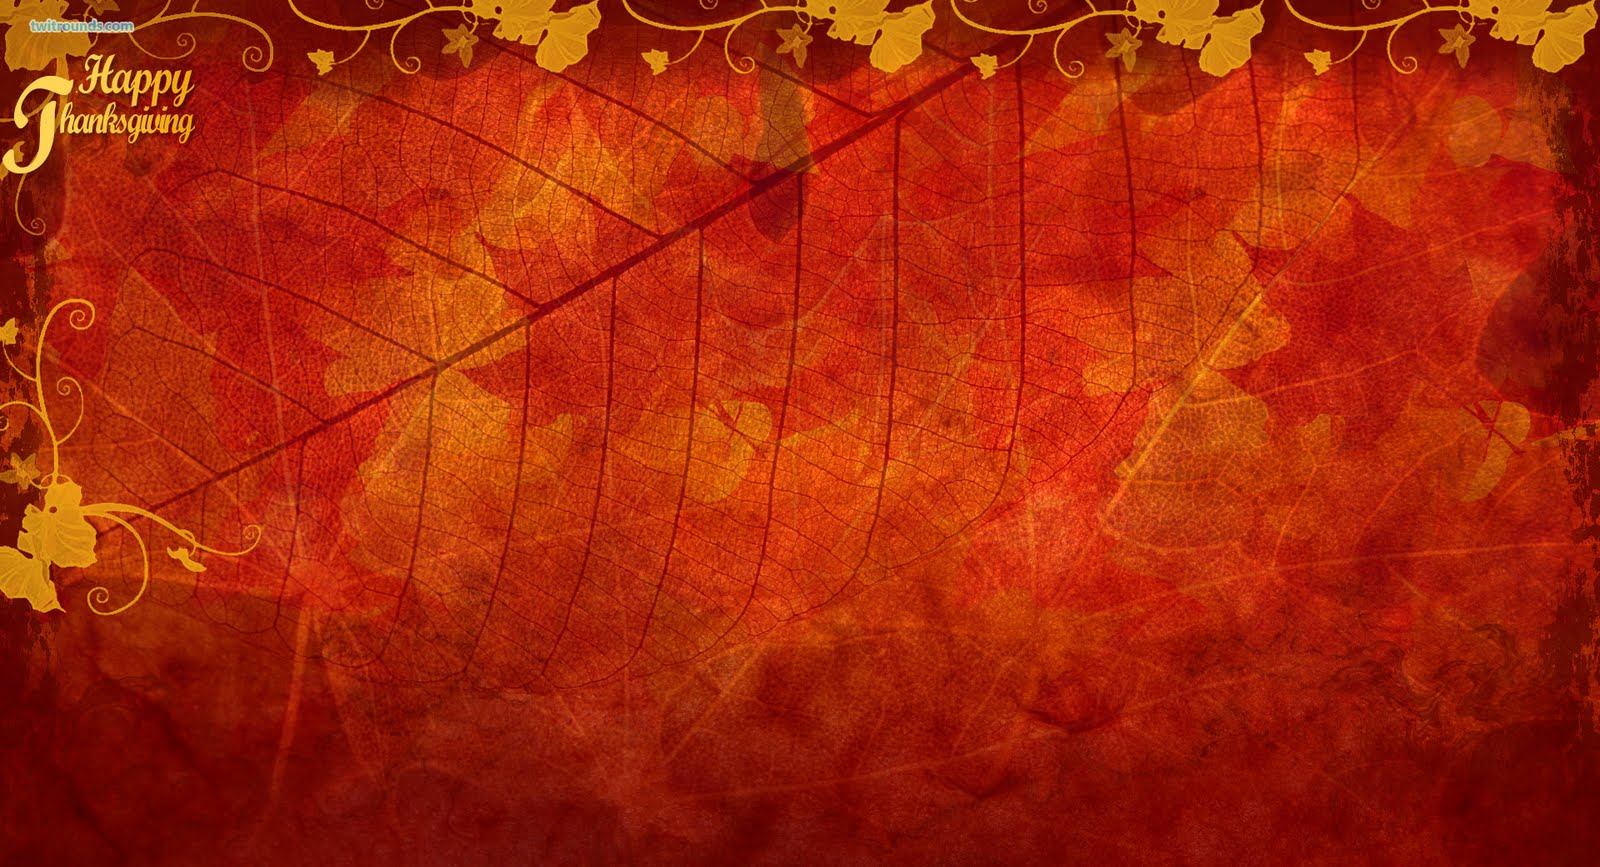 Powerpoint Thanksgiving Background   PowerPoint Backgrounds for 1600x867